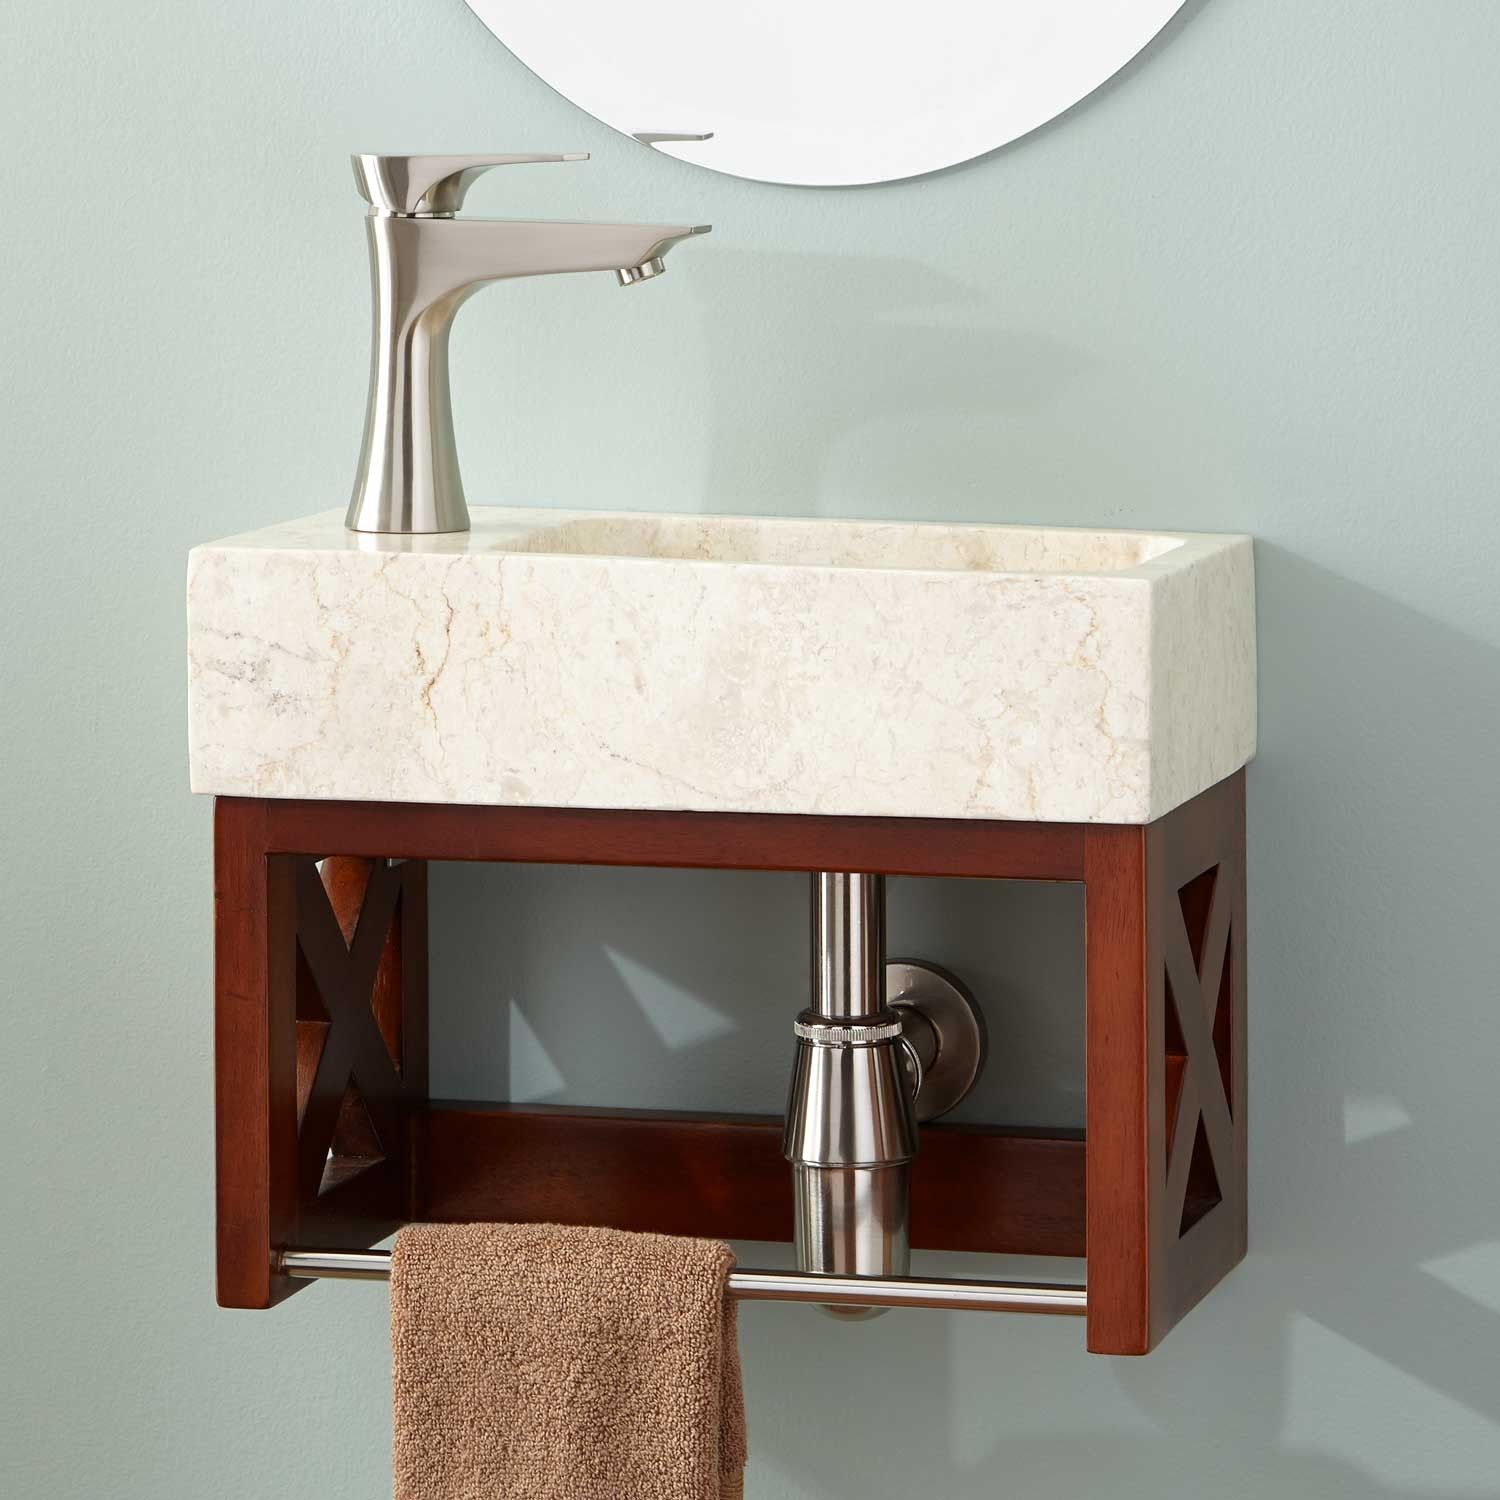 cabinet vanity wall model bathroom ideas styles vanities cabinets mount hung mounted modern